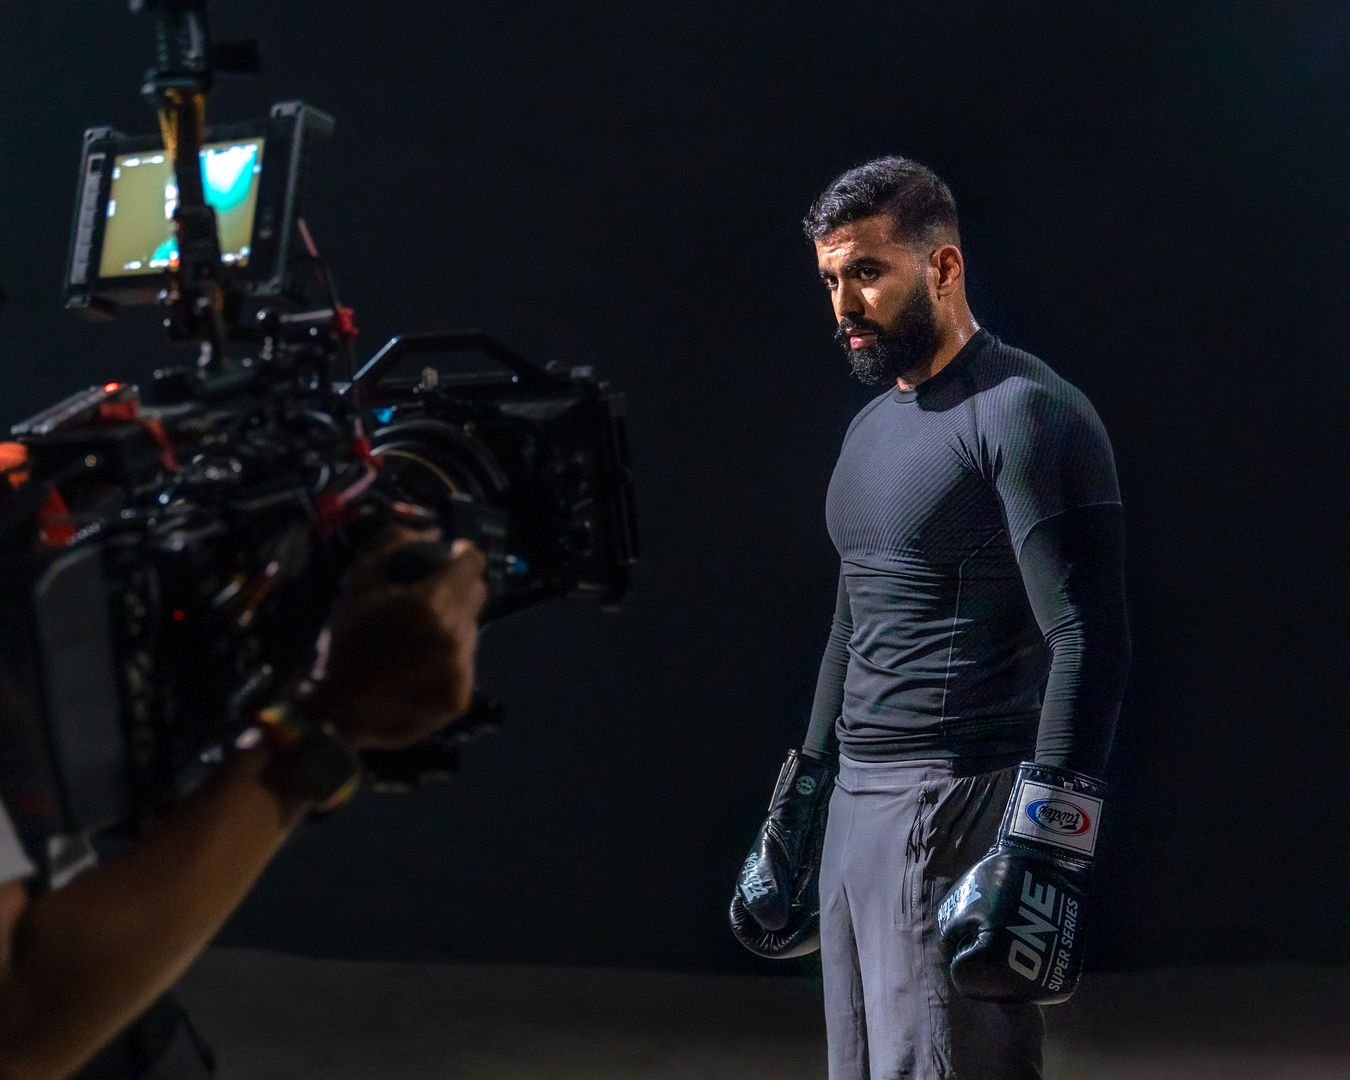 Meet India's Niraj Puran Rao Before He Competes On 'The Apprentice: ONE Championship Edition' - Niraj